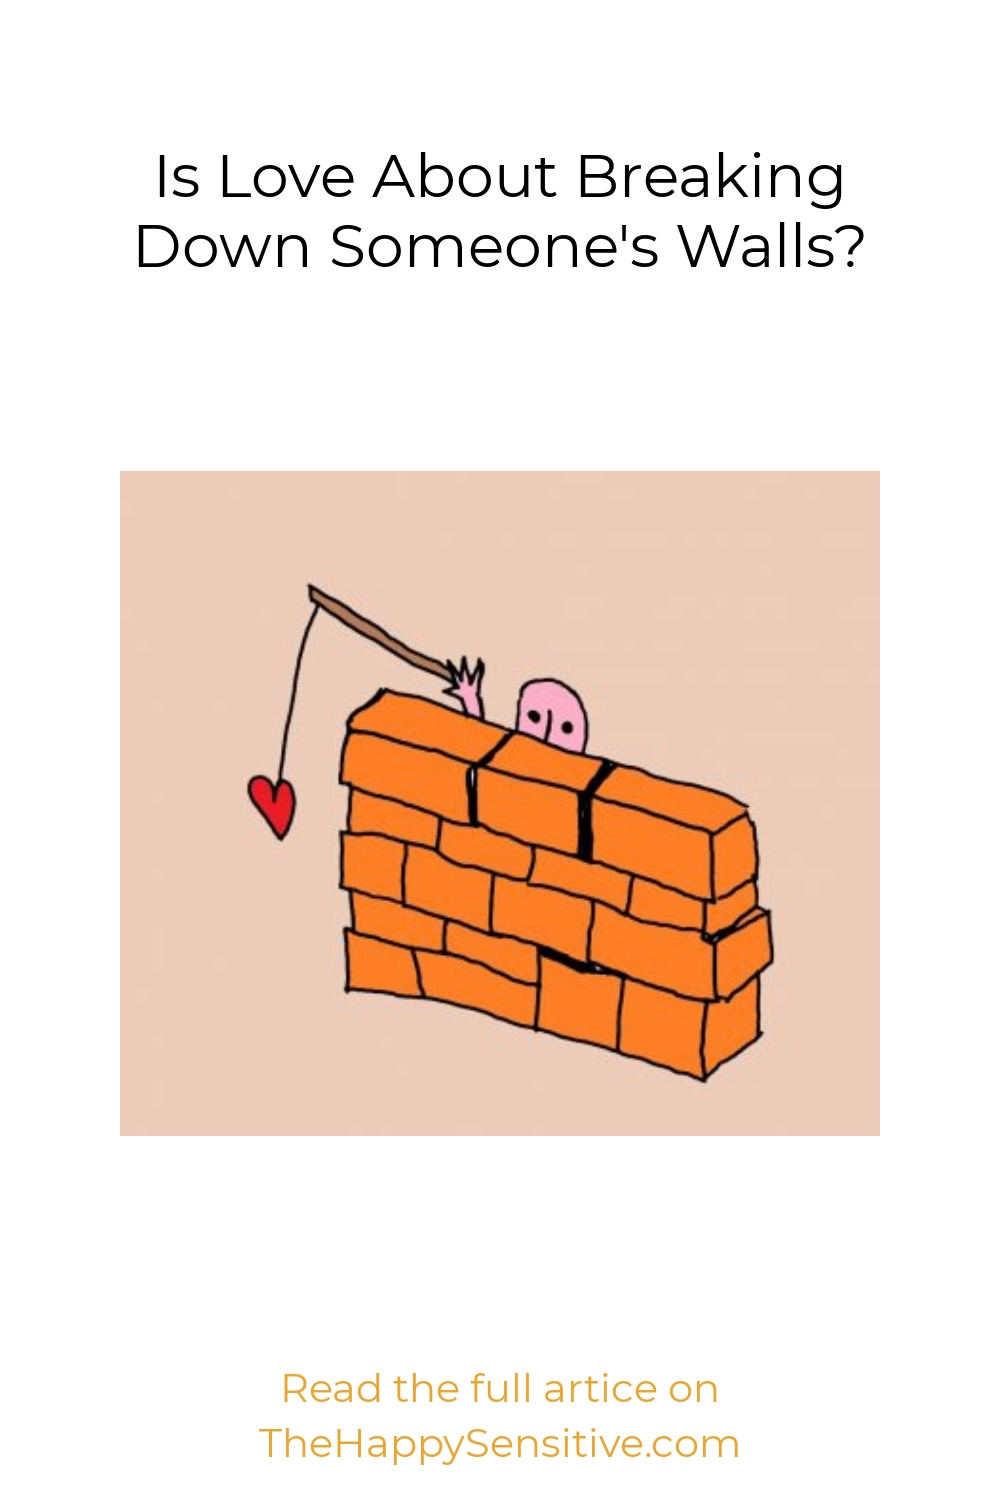 Is Love About Breaking Down Someone's Walls?